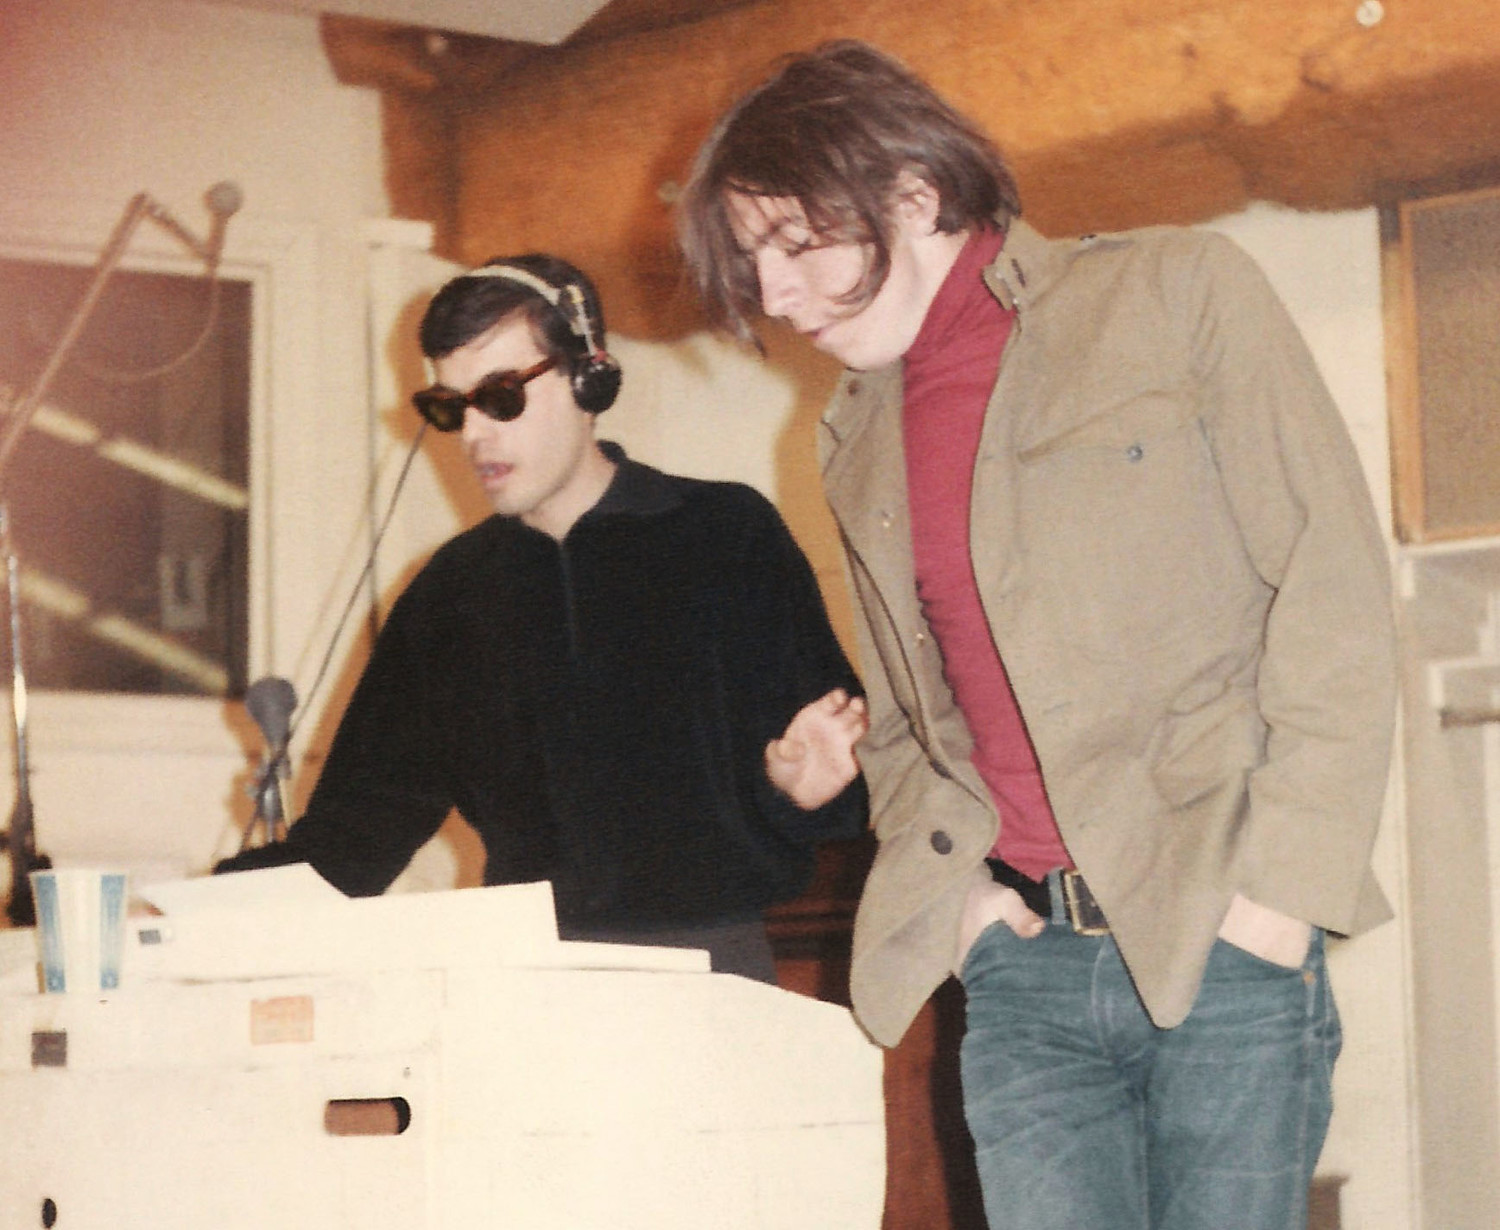 Joe Kookoolis and Scott Fagan recording at Associated Studios in New York City in 1965.